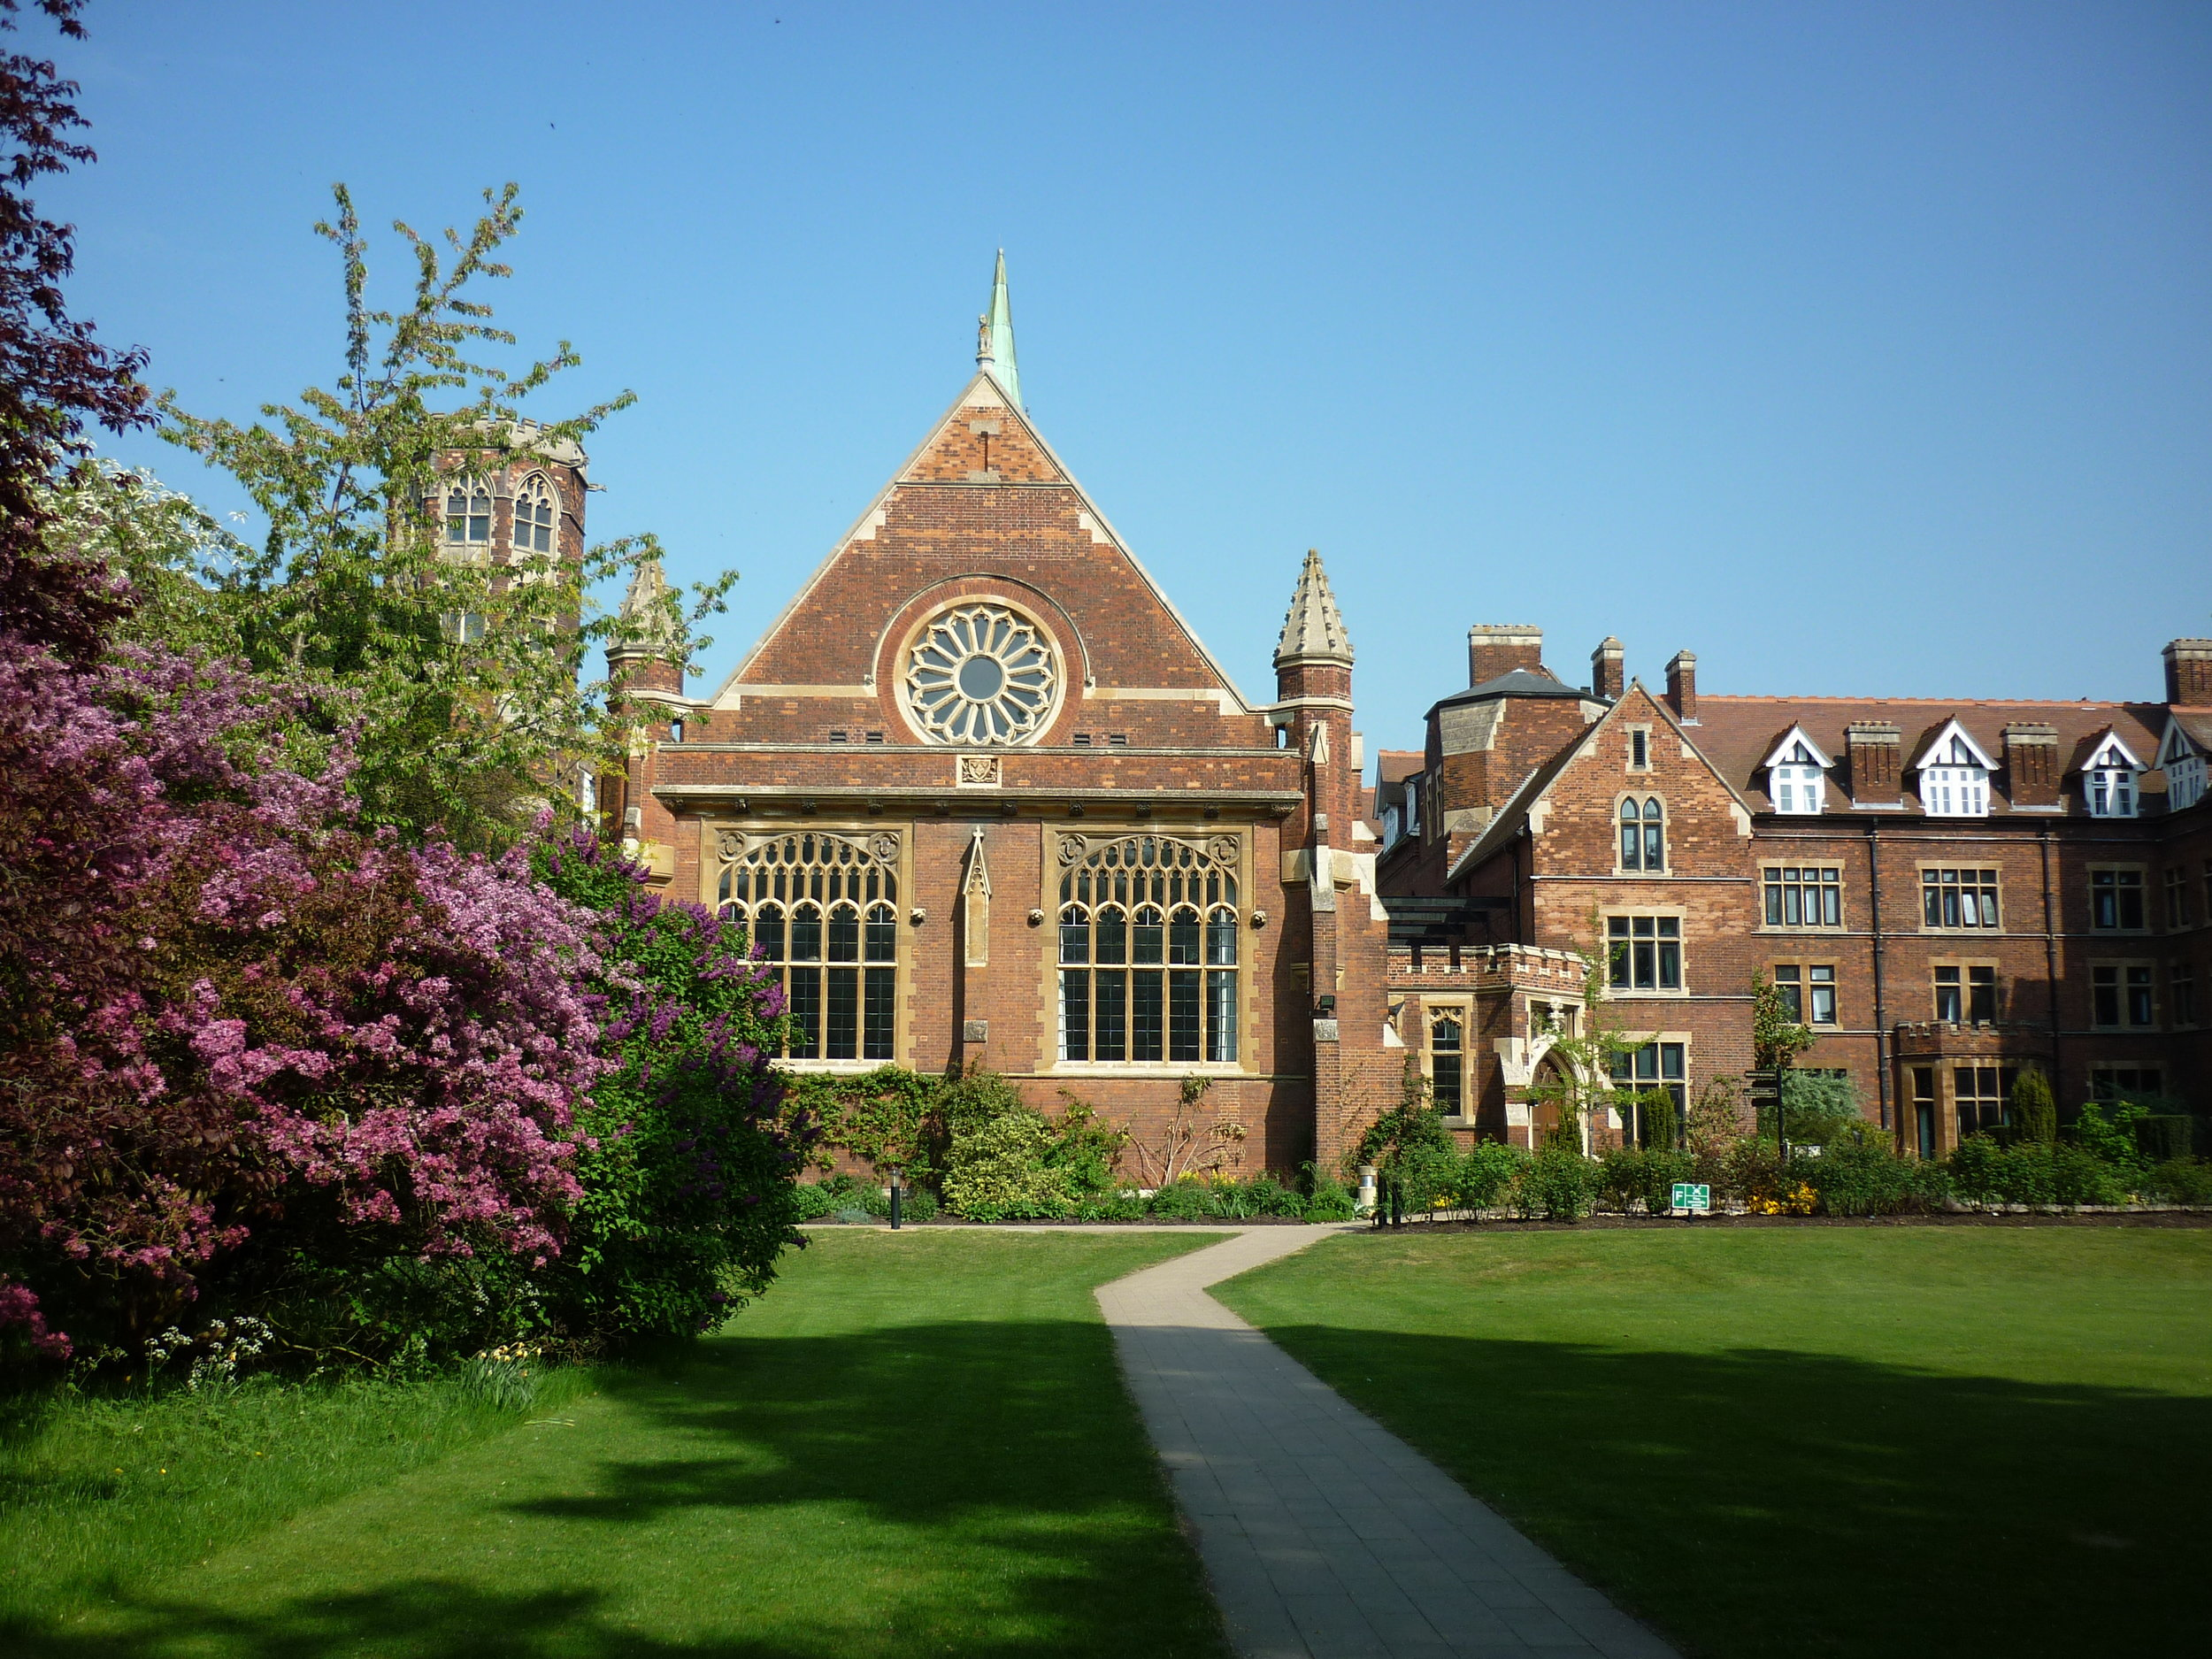 The_Cavendish_Building_of_Homerton_College_Cambridge,_May_2011.jpg